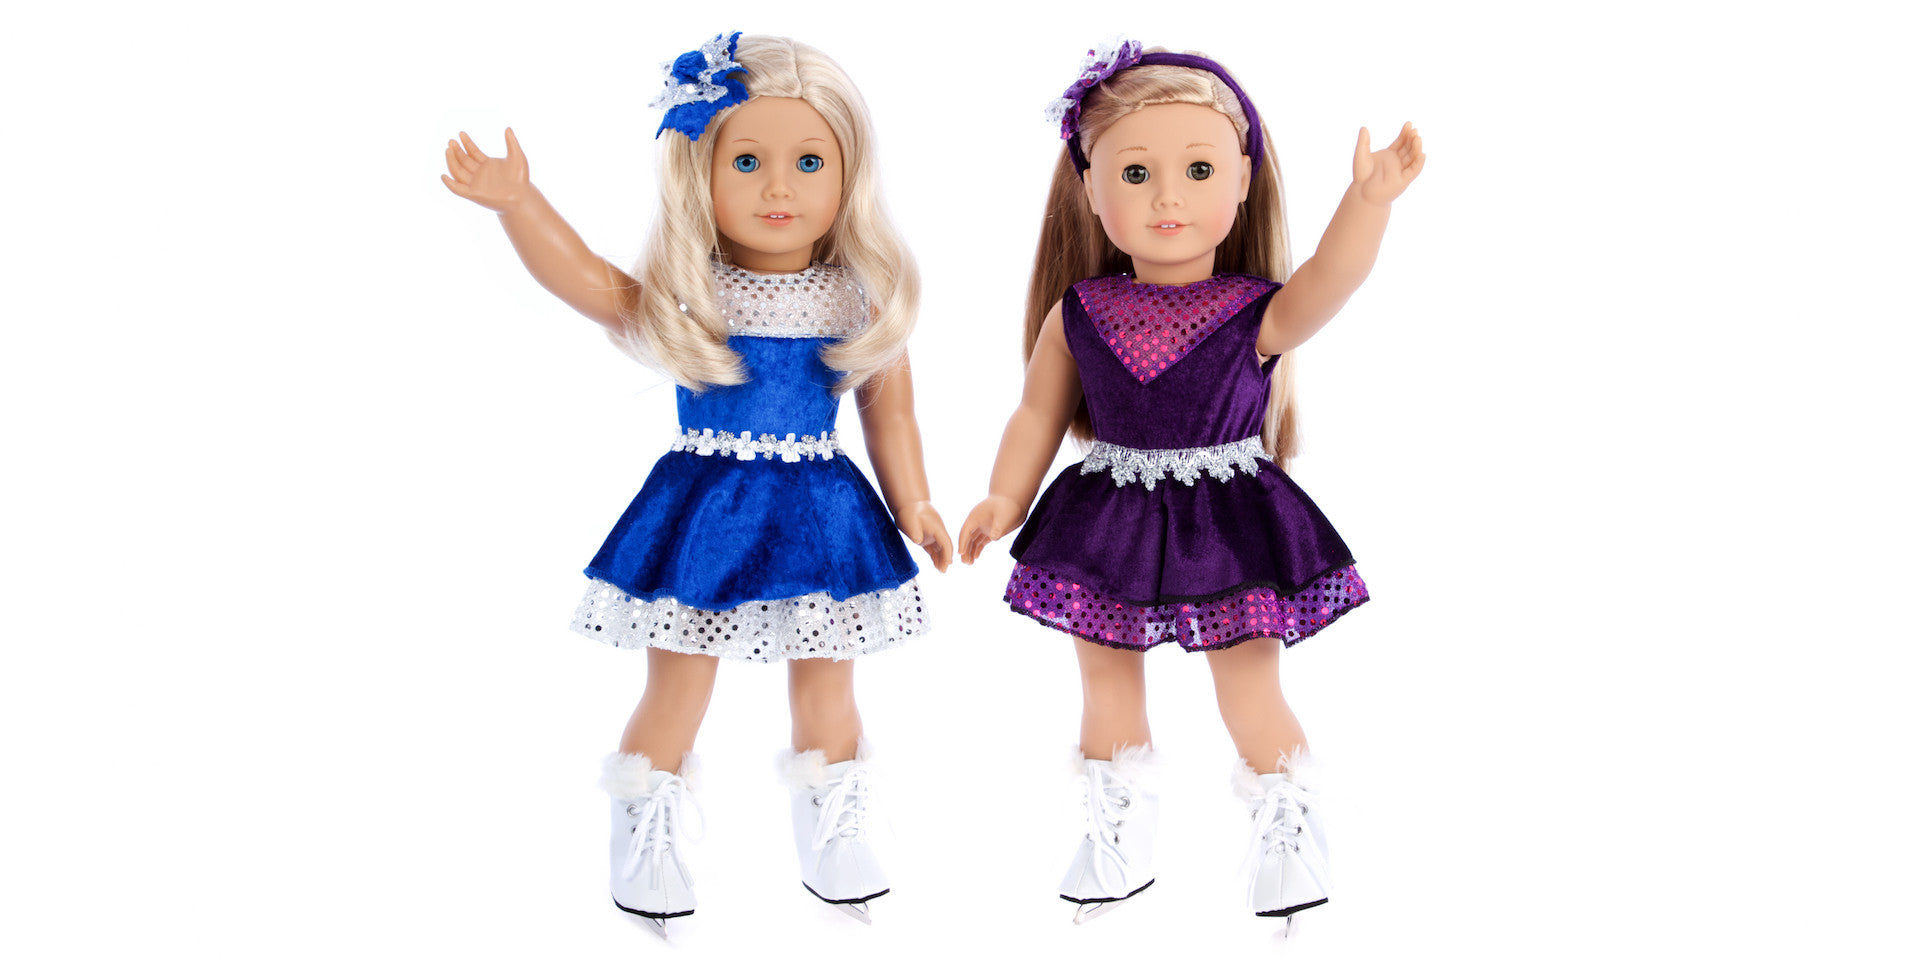 Ice Skating Queen - Doll Clothes for American Girl